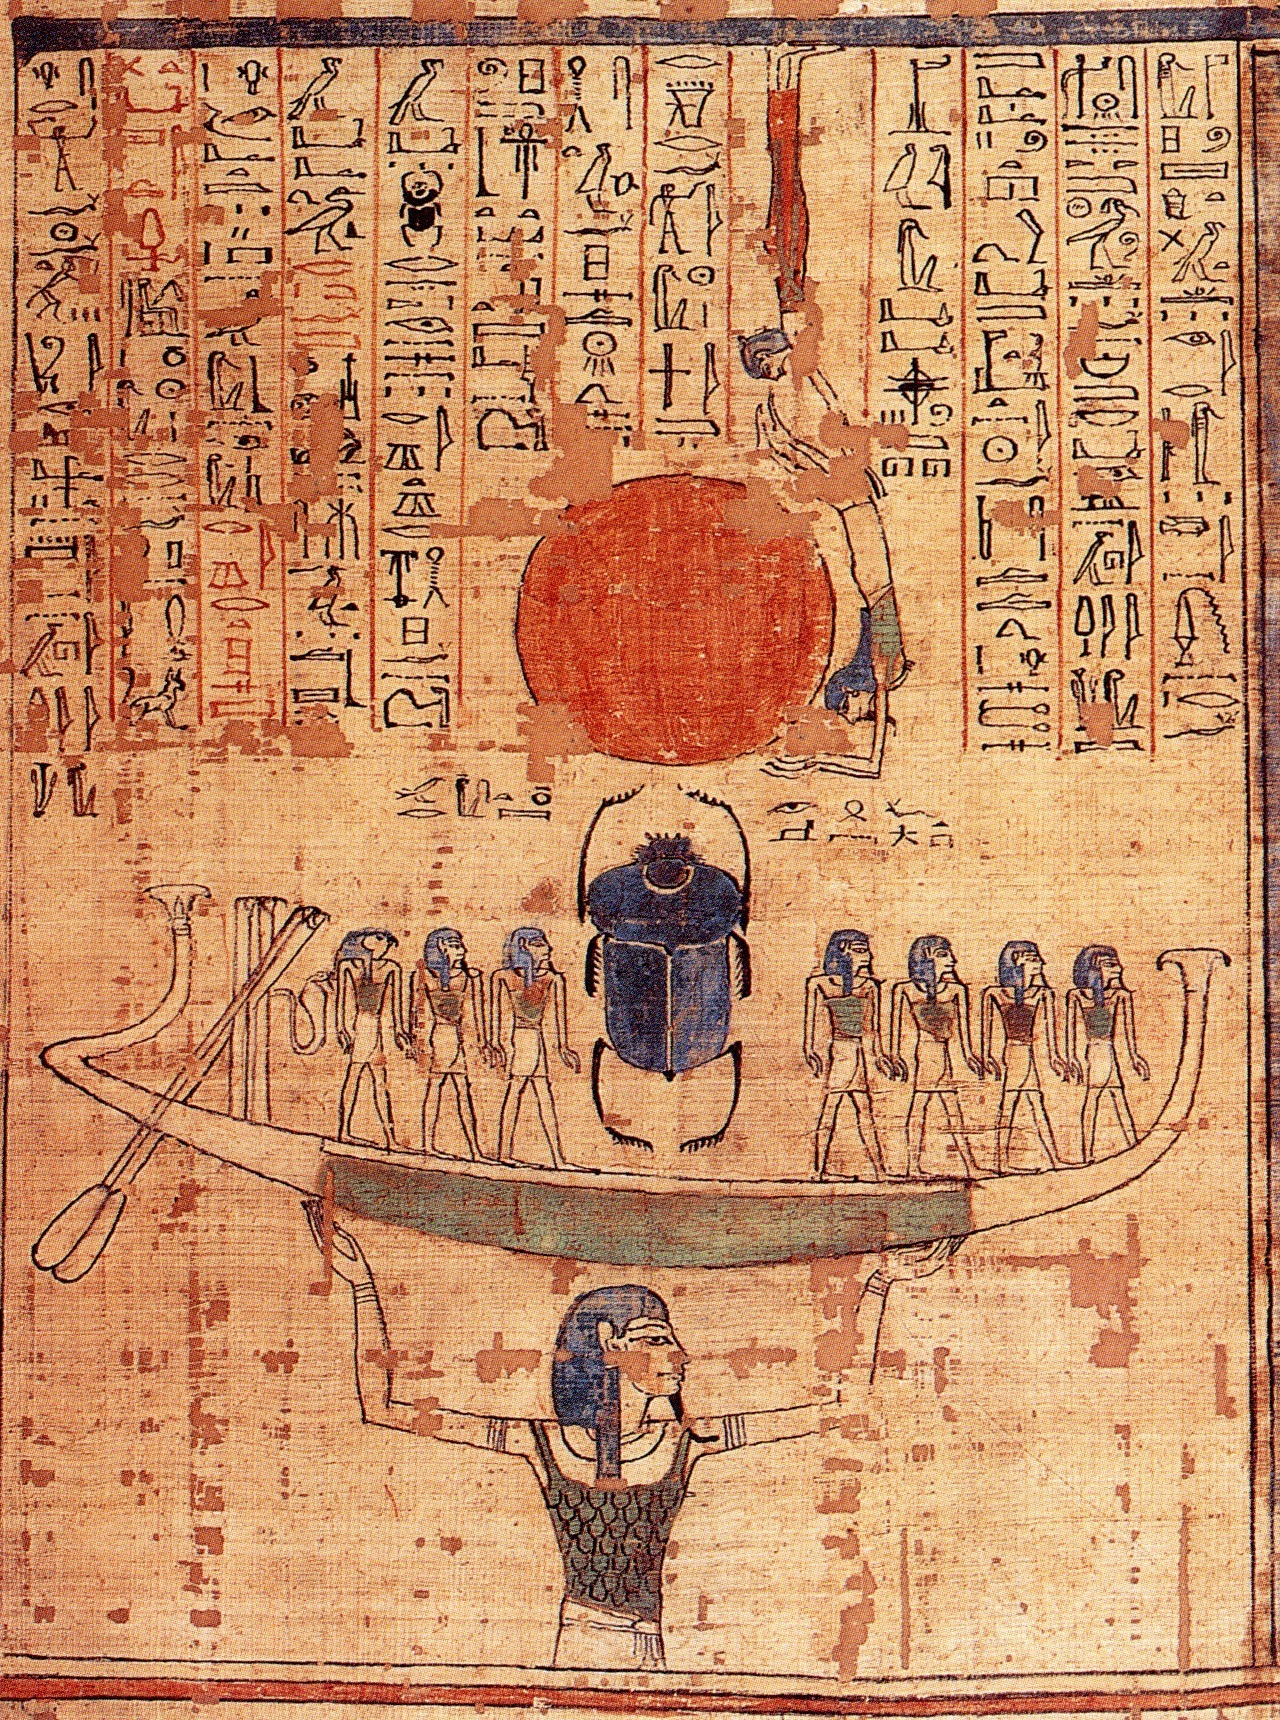 Here we see Nun, god of the waters of chaos, lifting the barque (or boat) of the sun god Ra, represented by the scarab and the sun disk, into the sky at the beginning of time. During high holidays, ancient priests have to put their god's giant statue in a boat and row it across the Nile, which sounds…tiring. - Wikicommons.